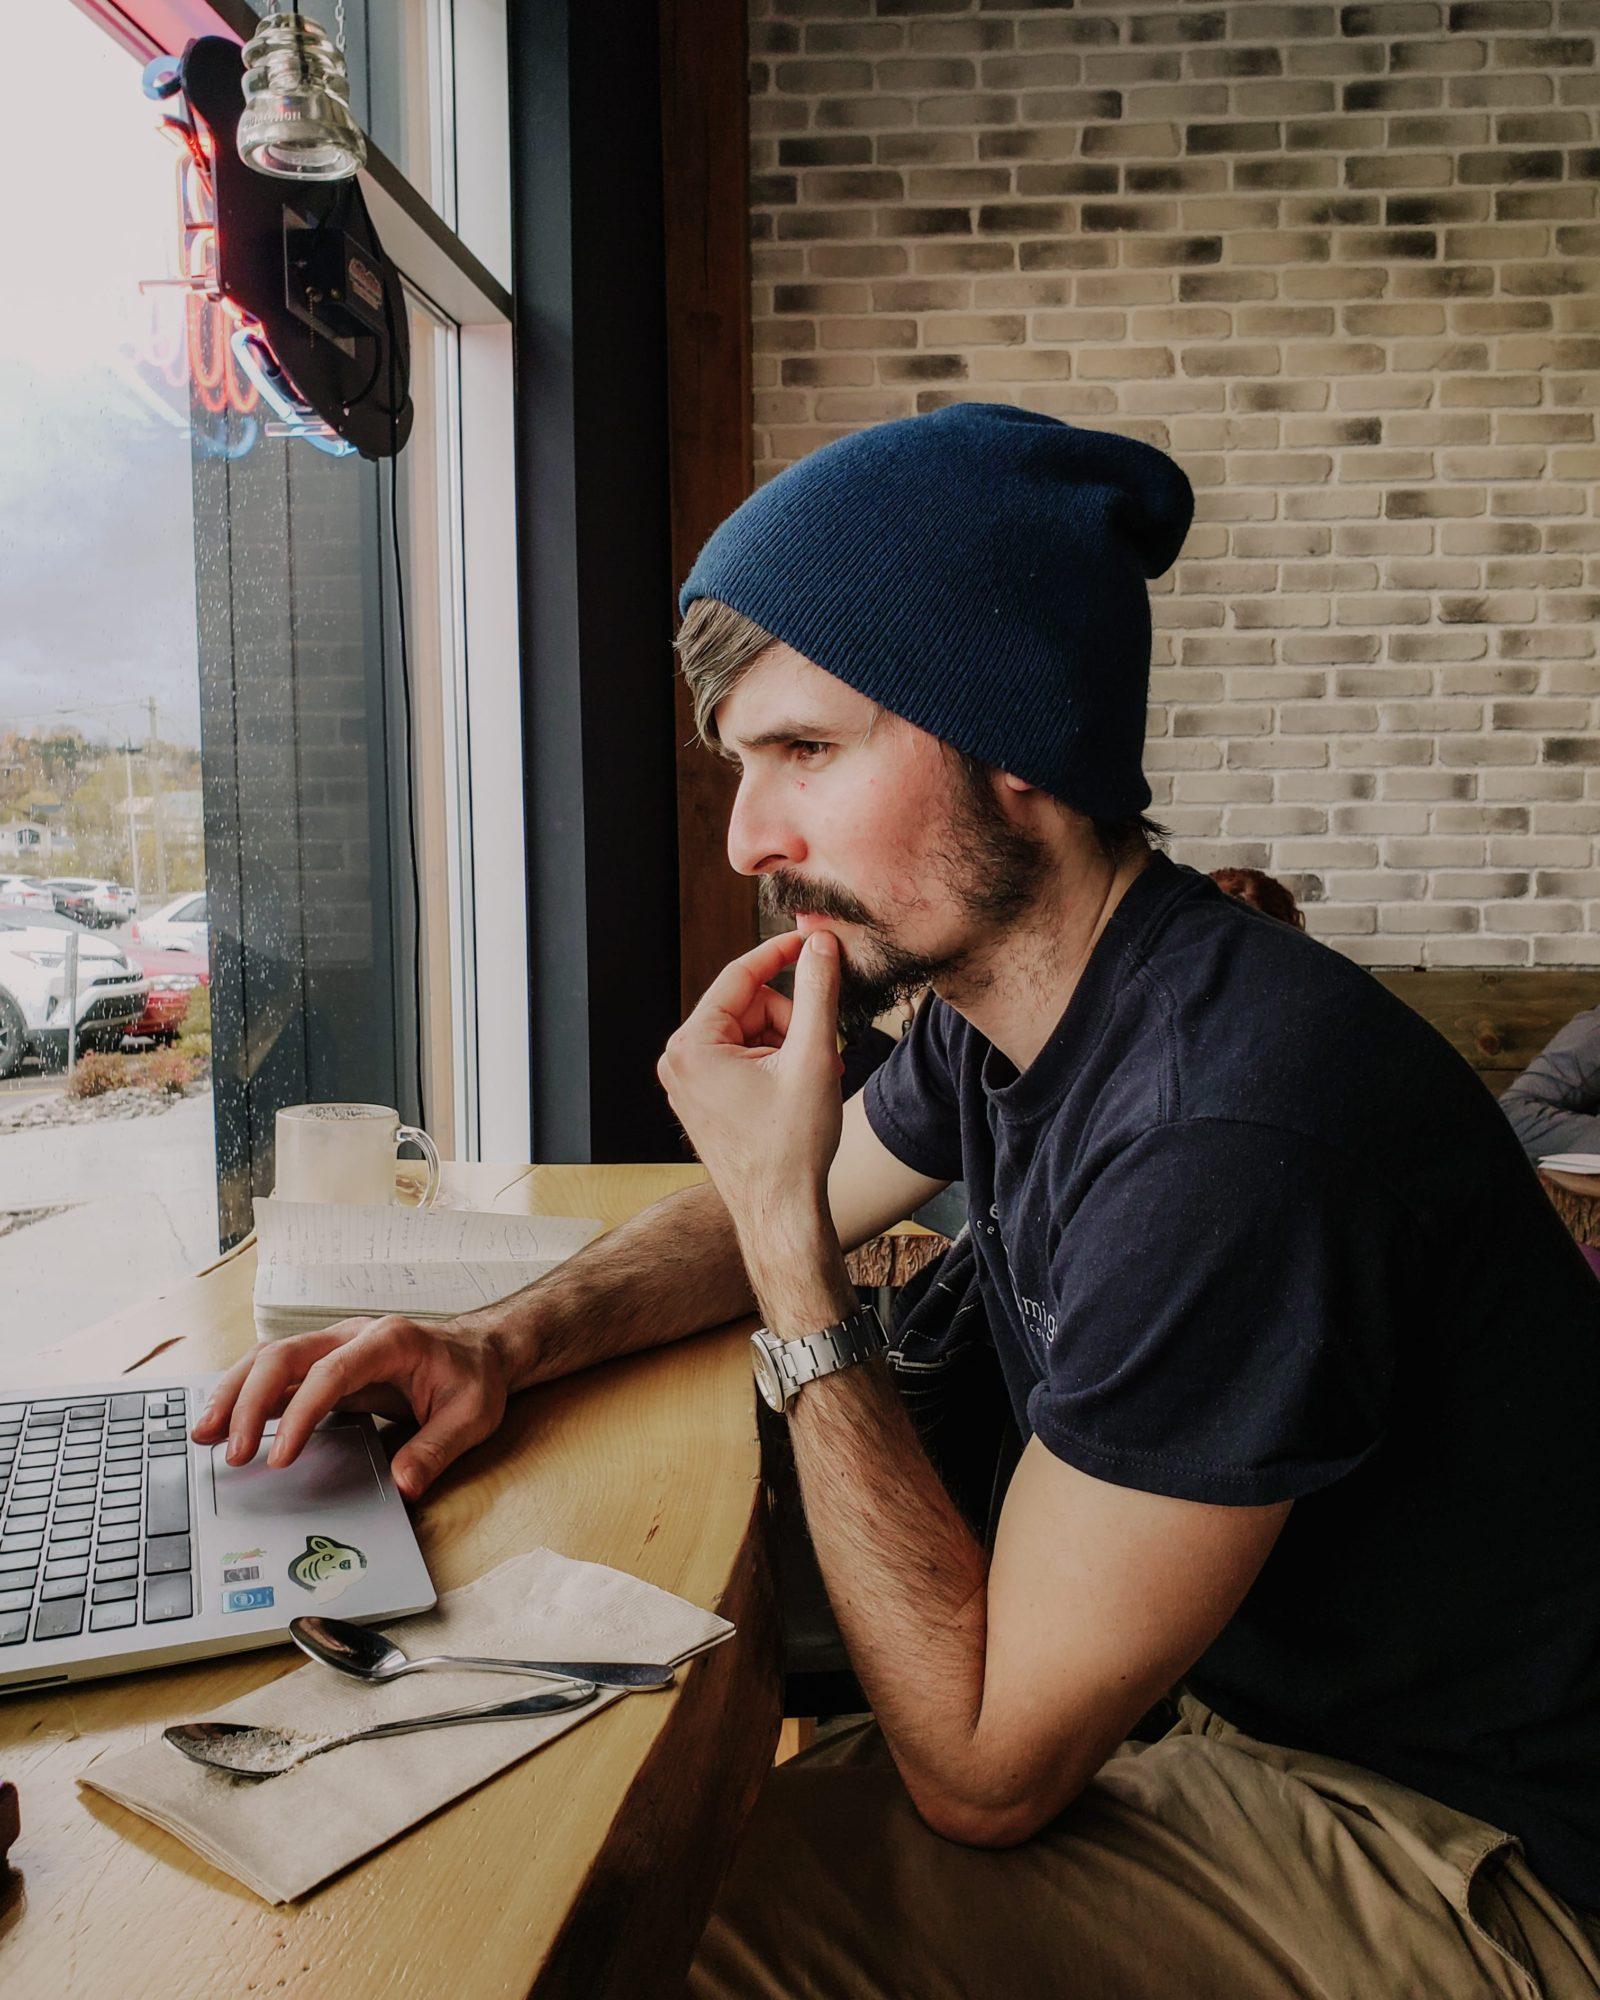 digital nomad guy working in a cafe